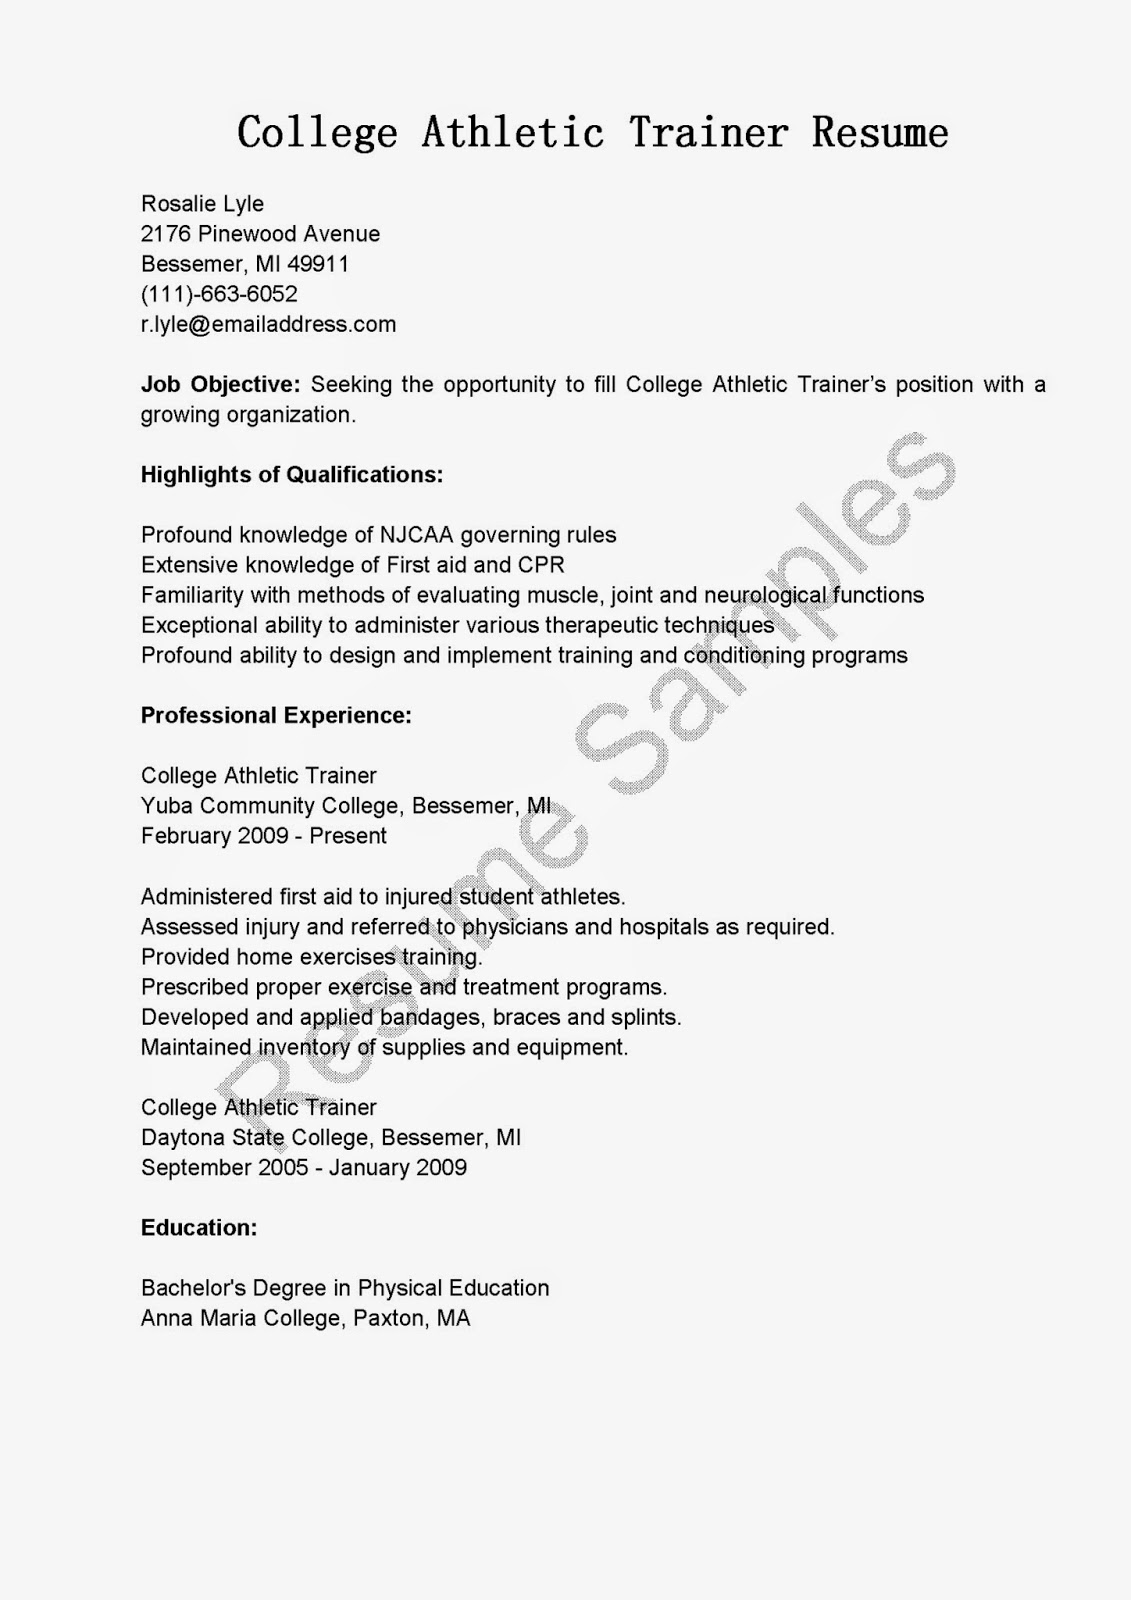 Sample Trainer Resume Resume Samples College Athletic Trainer Resume Sample